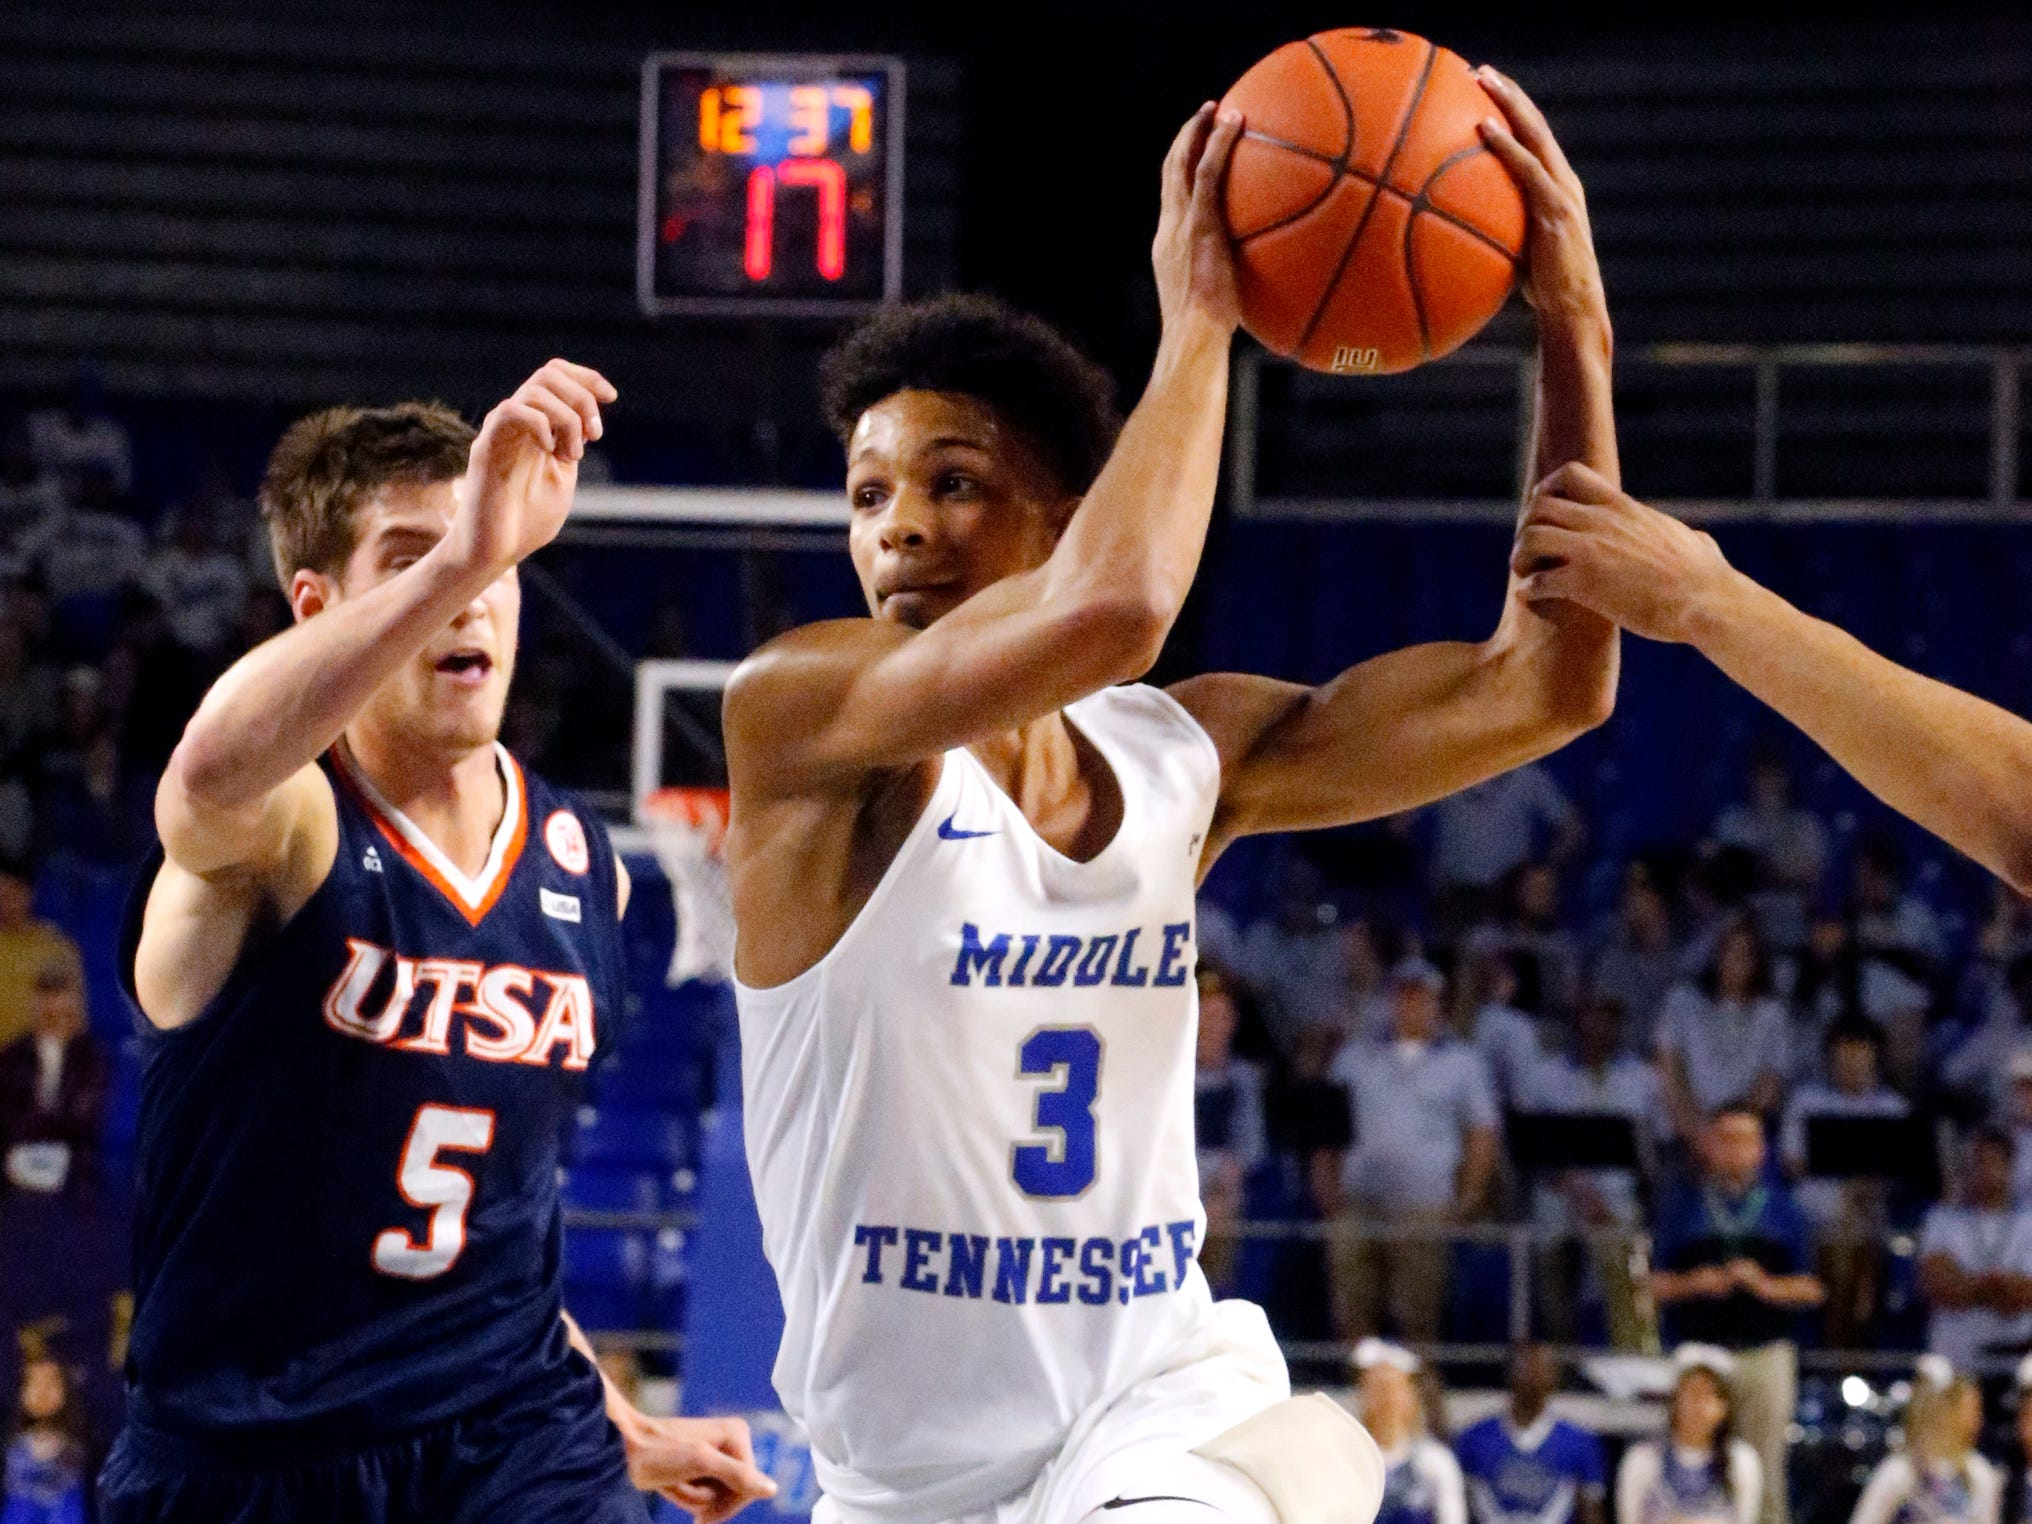 MTSU's guard Donovan Sims (3) drives to the basket s UTSA's guard Giovanni De Nicolao (5) comes up from behind him on Thursday Jan. 17, 2019.